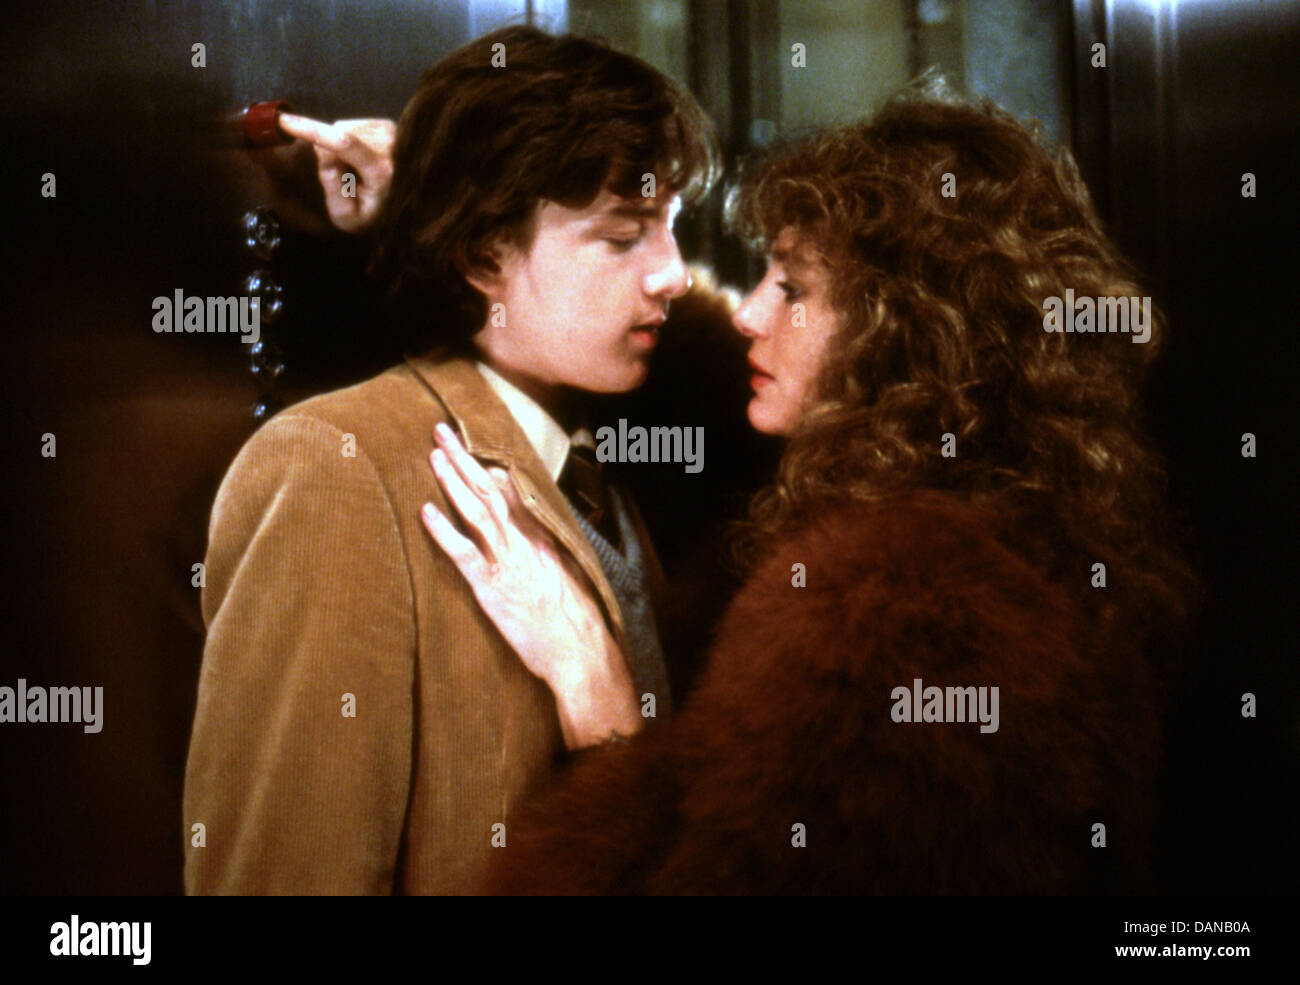 CLASS (1983) ANDREW MCCARTHY, JACQUELINE BISSET, LEWIS JOHN CARLINO (DIR) CLS 005 MOVIESTORE COLLECTION LTD - Stock Image